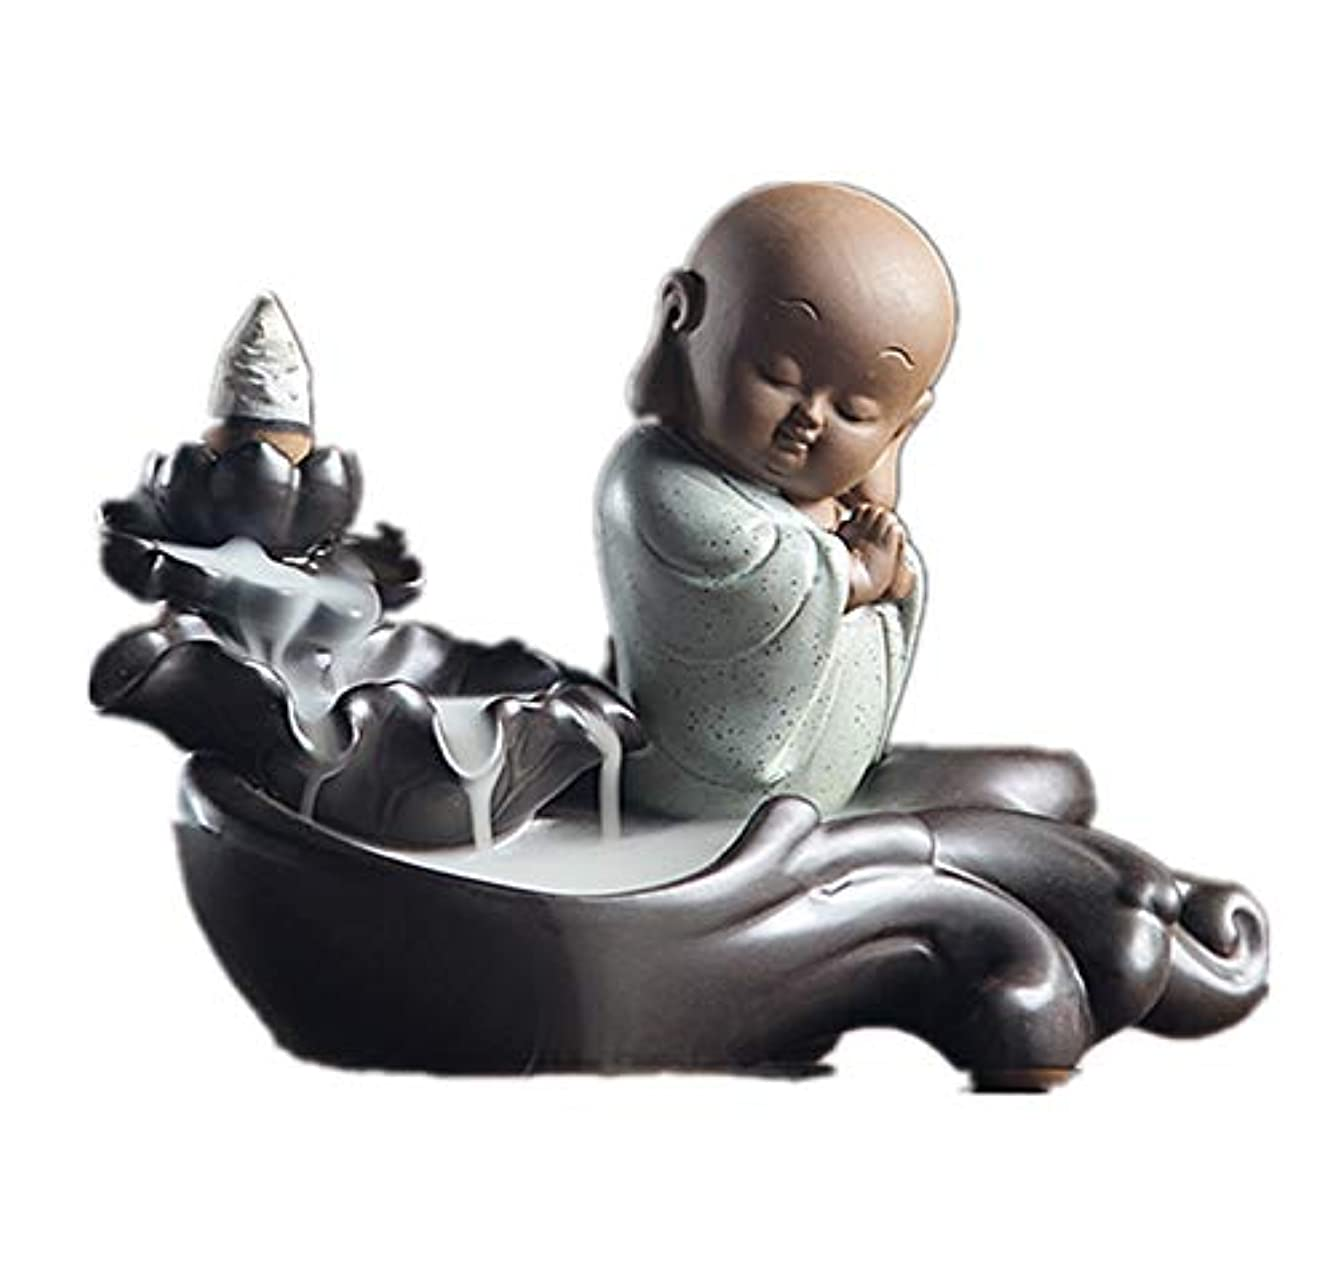 マグ一緒に市長XPPXPP Backflow Incense Burner, Household Ceramic Returning Cone-shaped Candlestick Burner